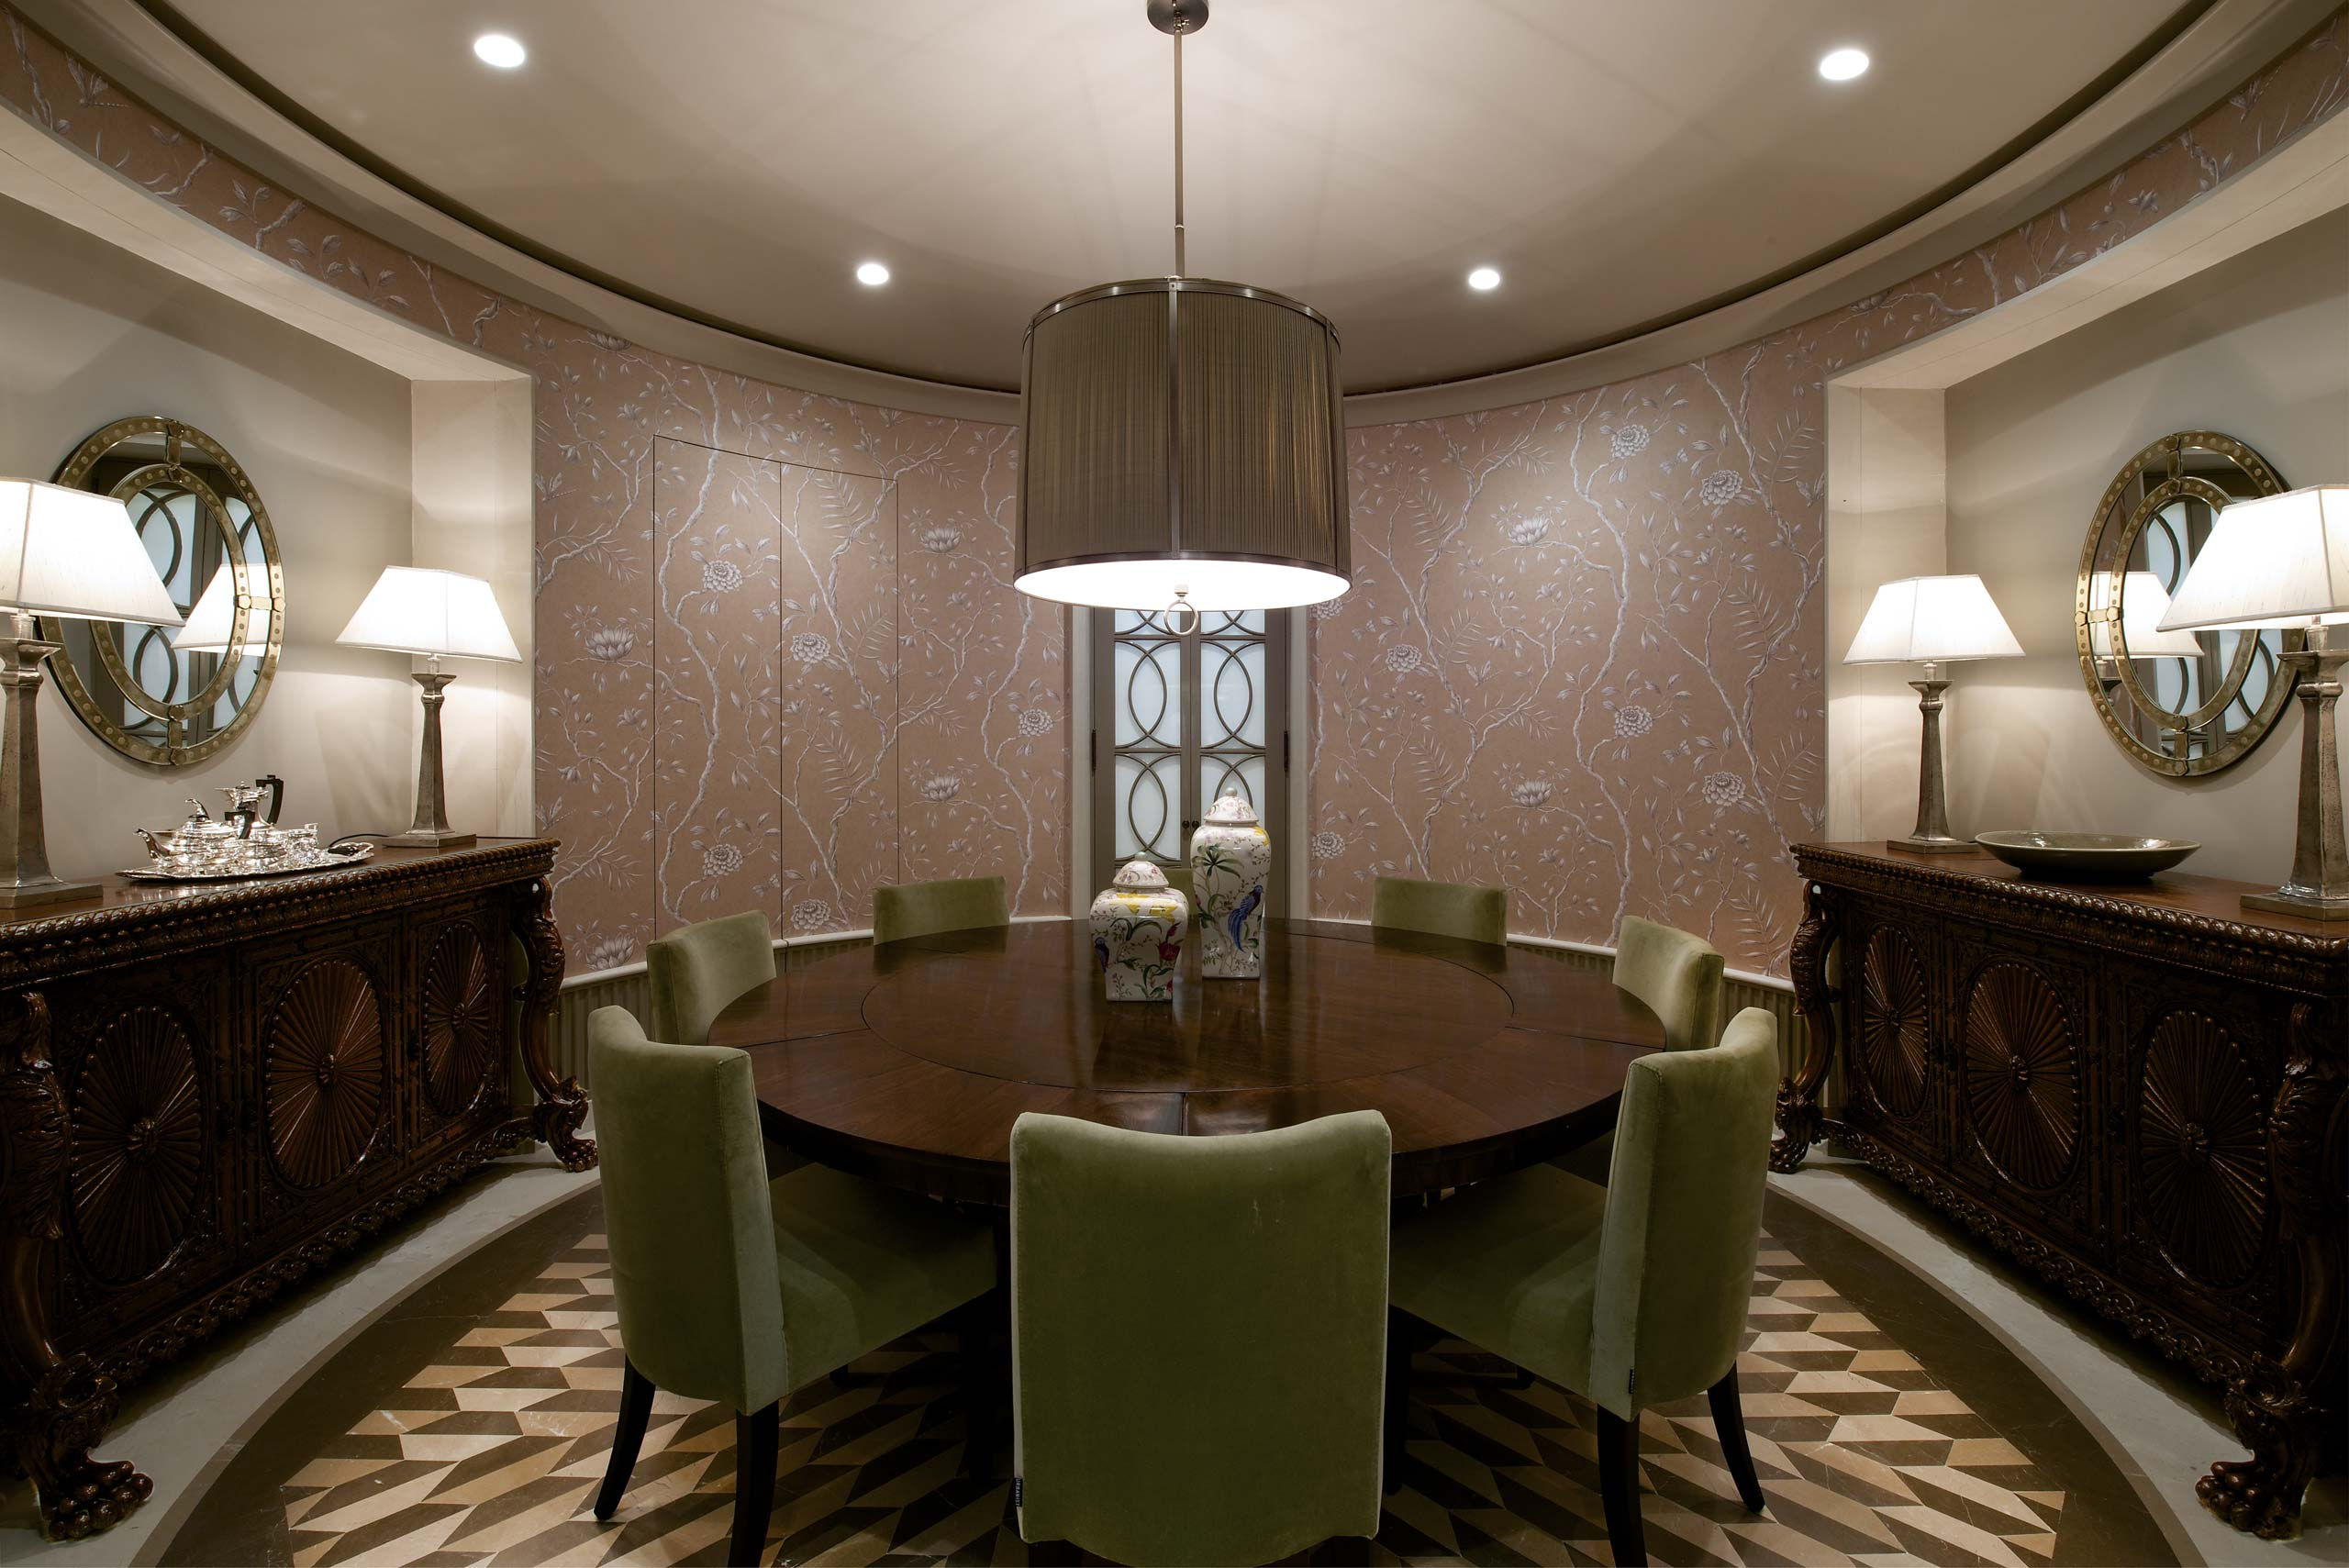 Circular Dining Room at duplex apartment interior design mumbai india